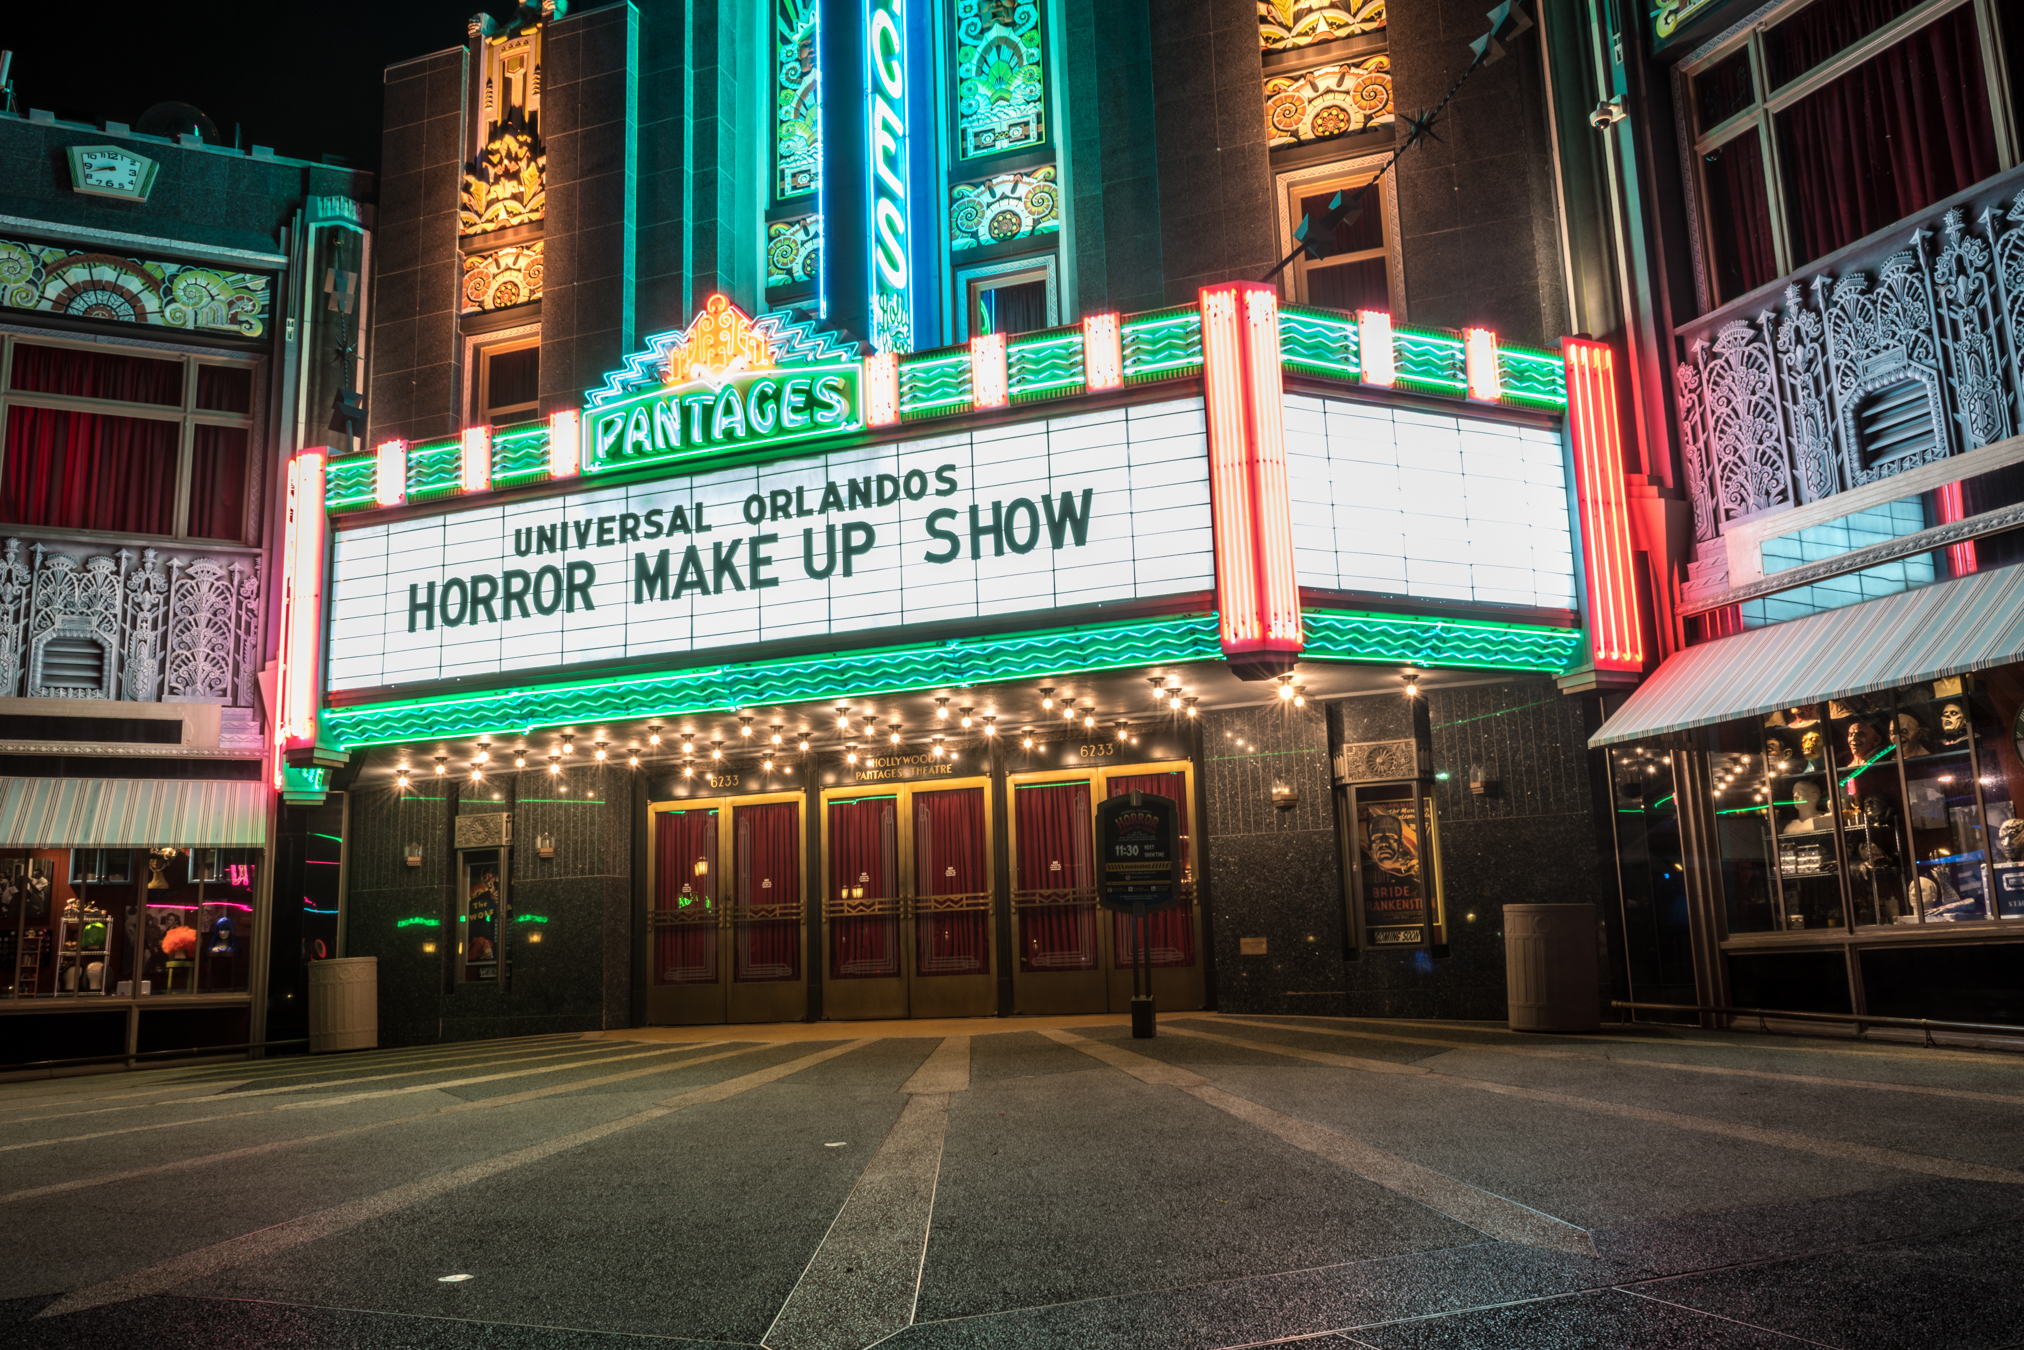 The Pantages Theater marquee advertises Universal Orlando's Horror Make-Up Show